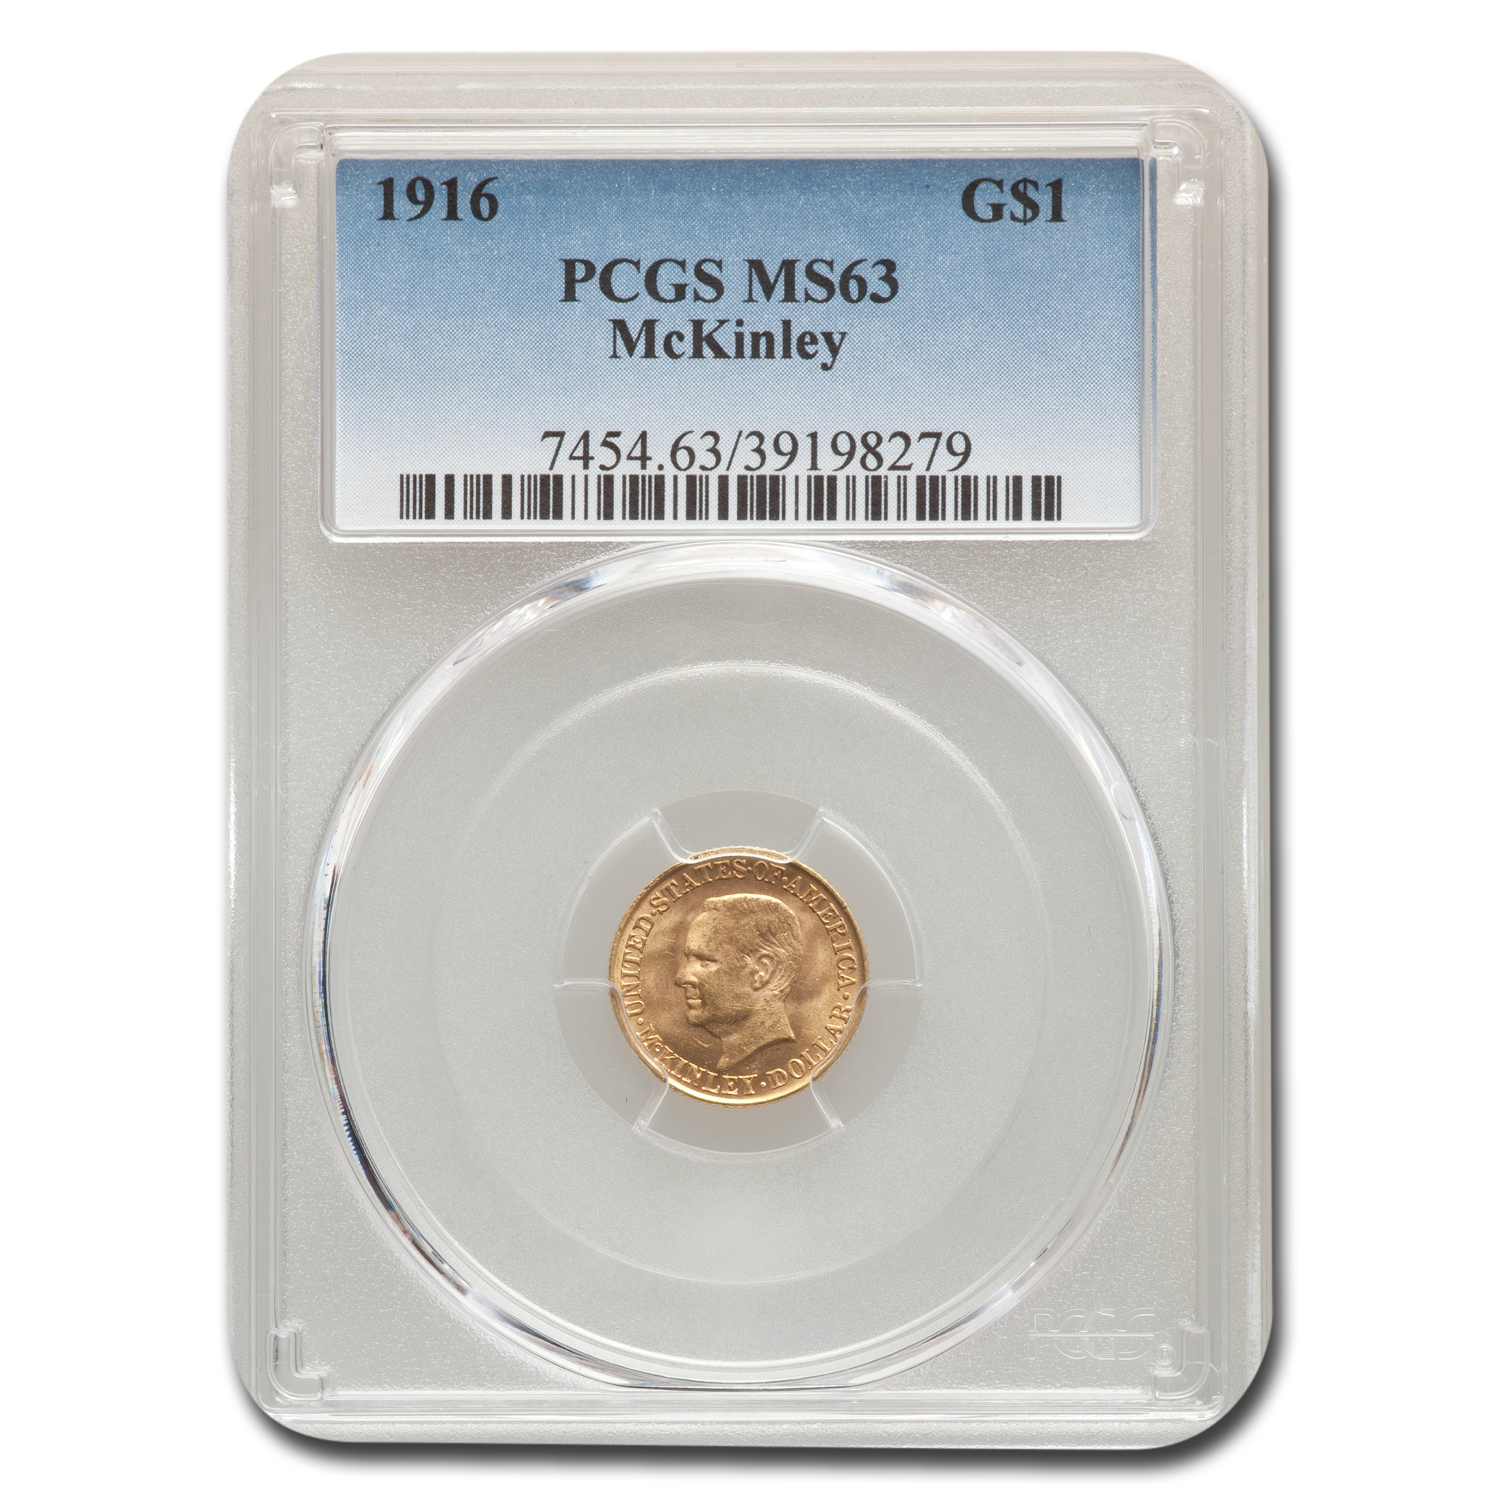 1916 Gold $1.00 McKinley MS-63 PCGS